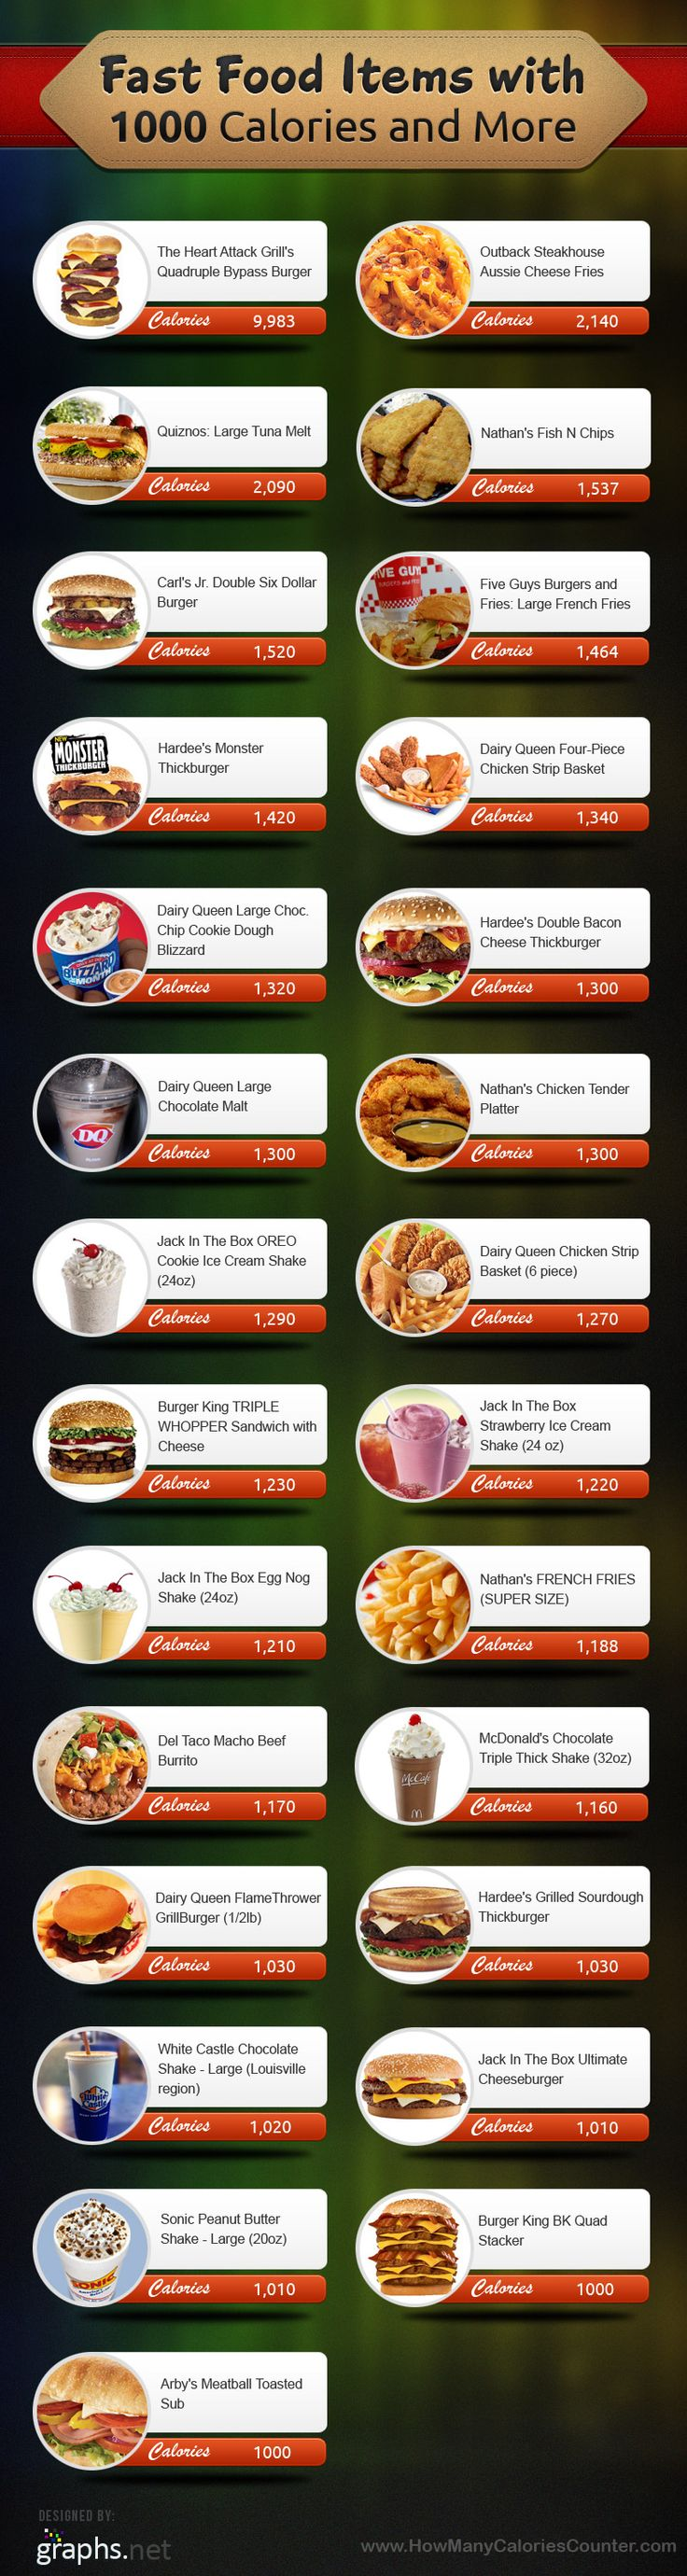 Fast Food Items With Over 1000 Calories